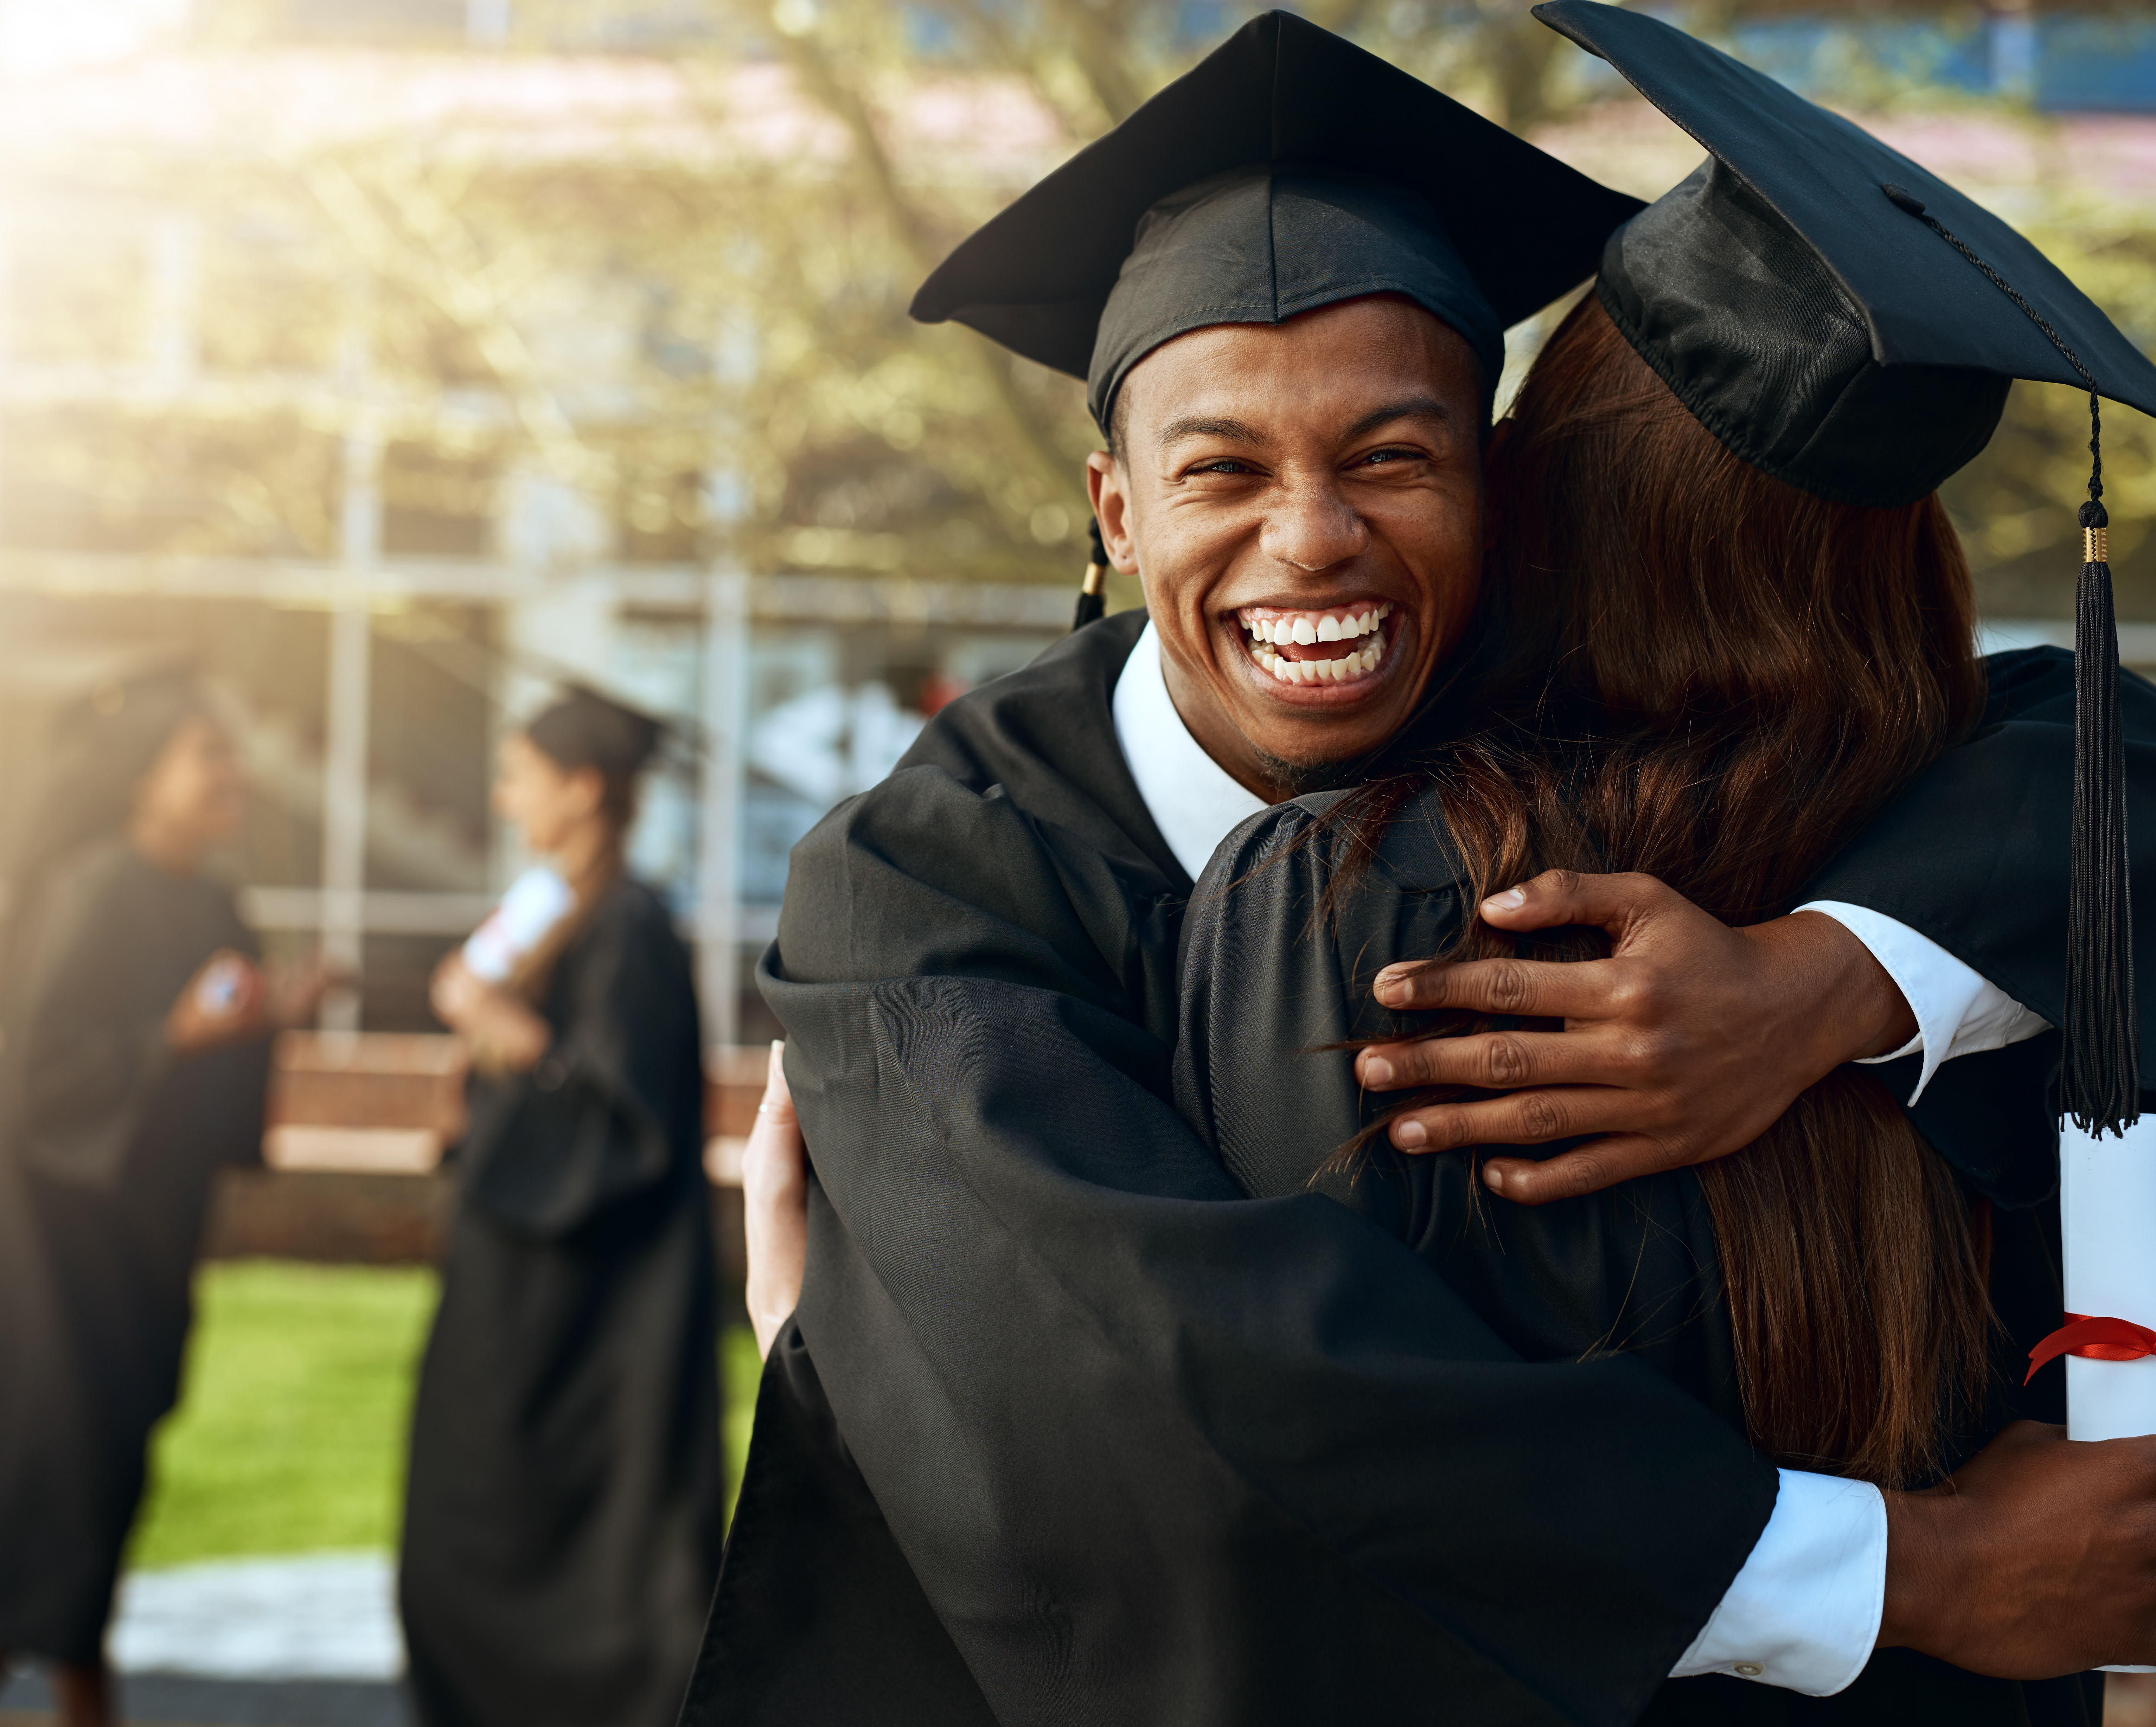 Student in a graduation cap and gown hugging someone and smiling at the camera